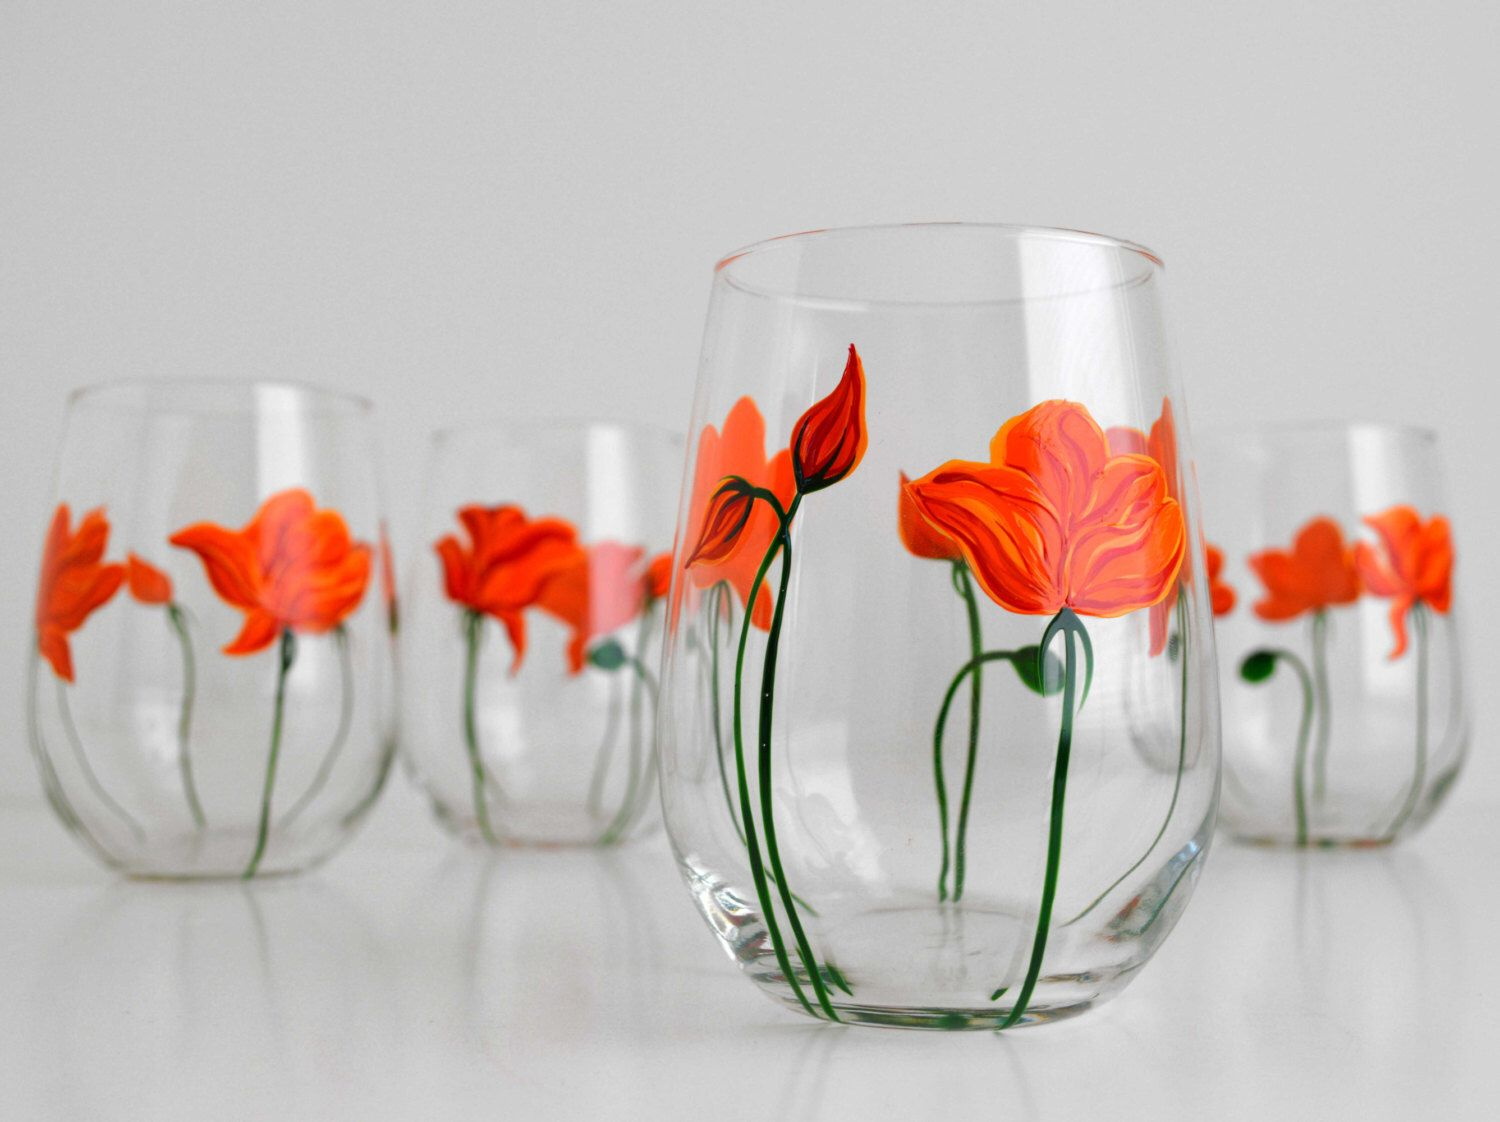 Orange Poppies Stemless Wine Glasses Hand Painted Wine Glasses For Mom Mothers Day Gift Set Of 2 Hand Painted Gifts Painted Wine Glasses Hand Painted